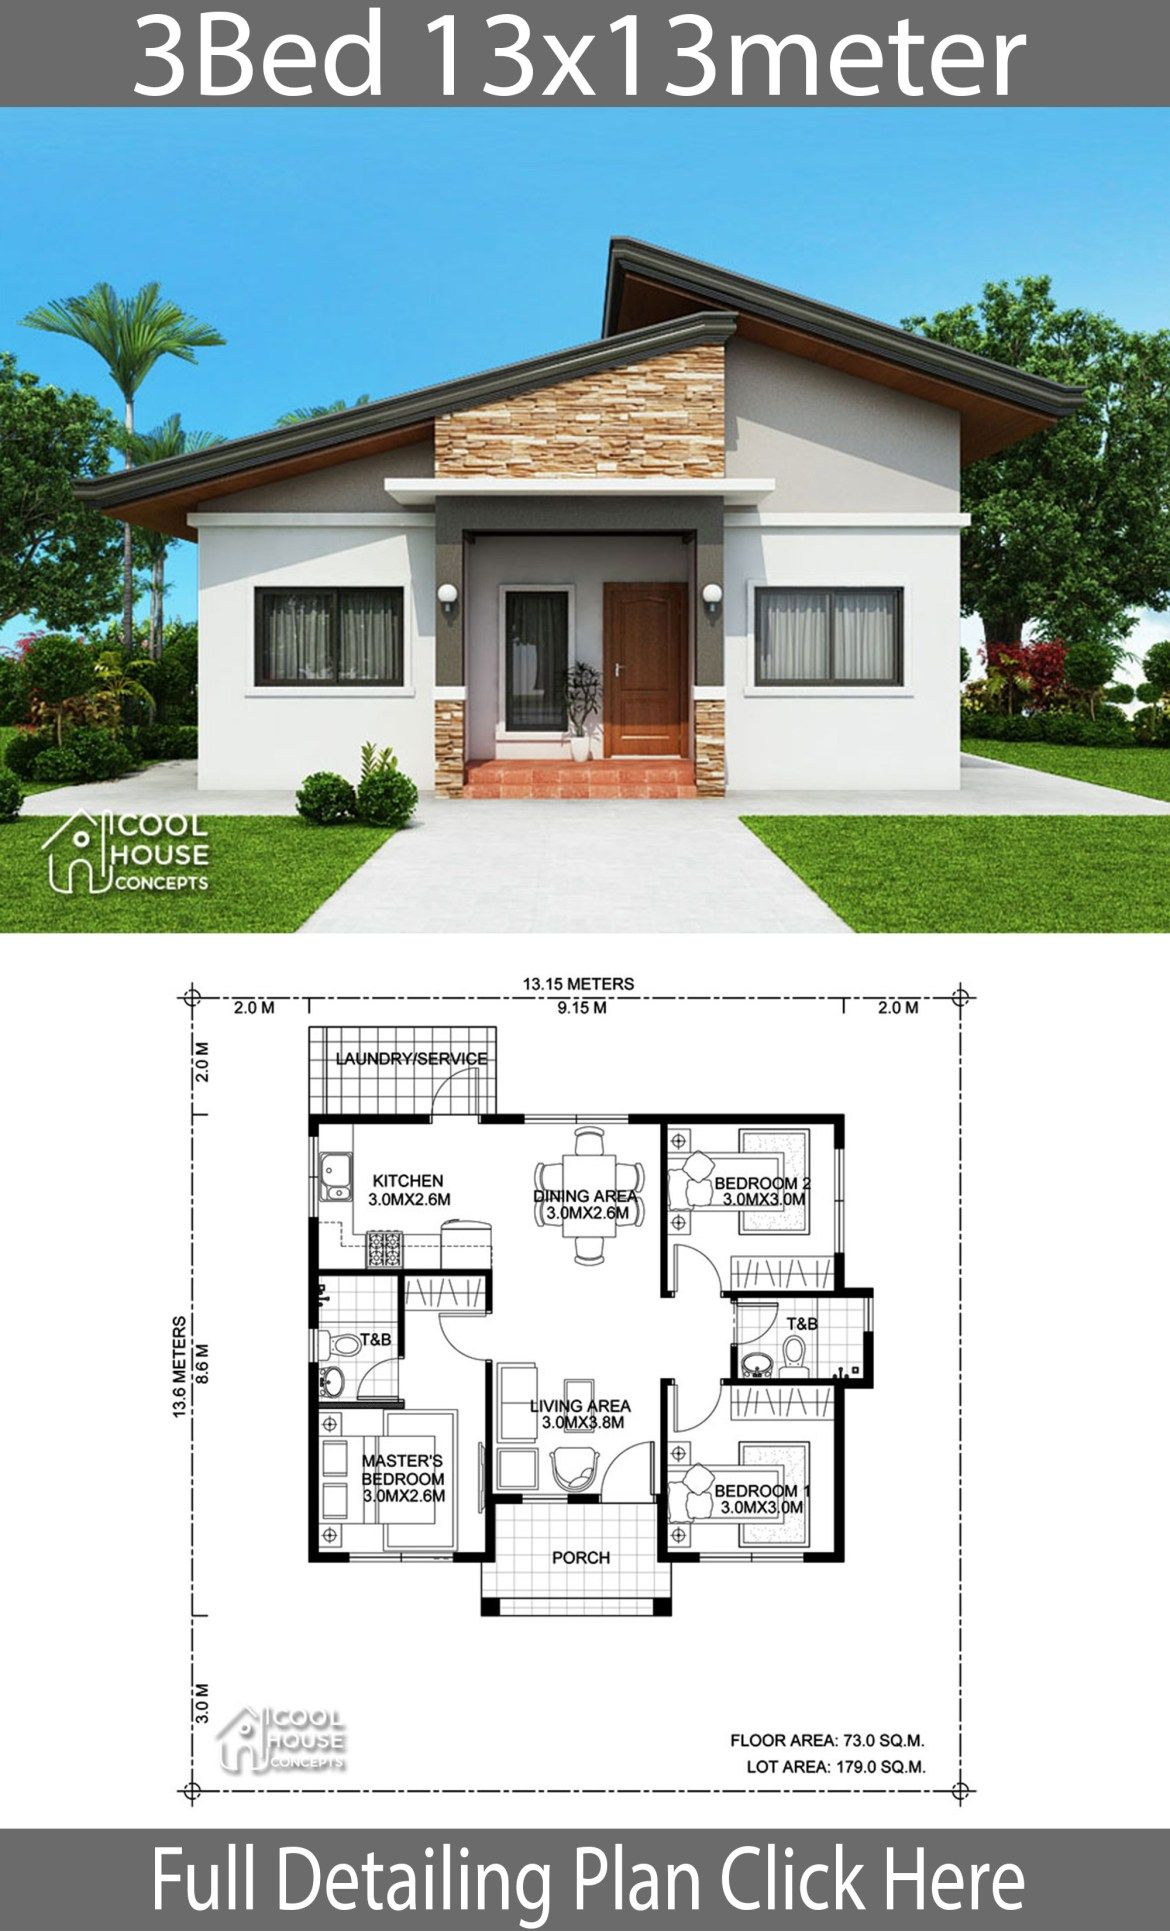 Home Design Plan 13x13m With 3 Bedrooms Home Planssearch Modern Bungalow House Bungalow House Plans Bungalow House Design